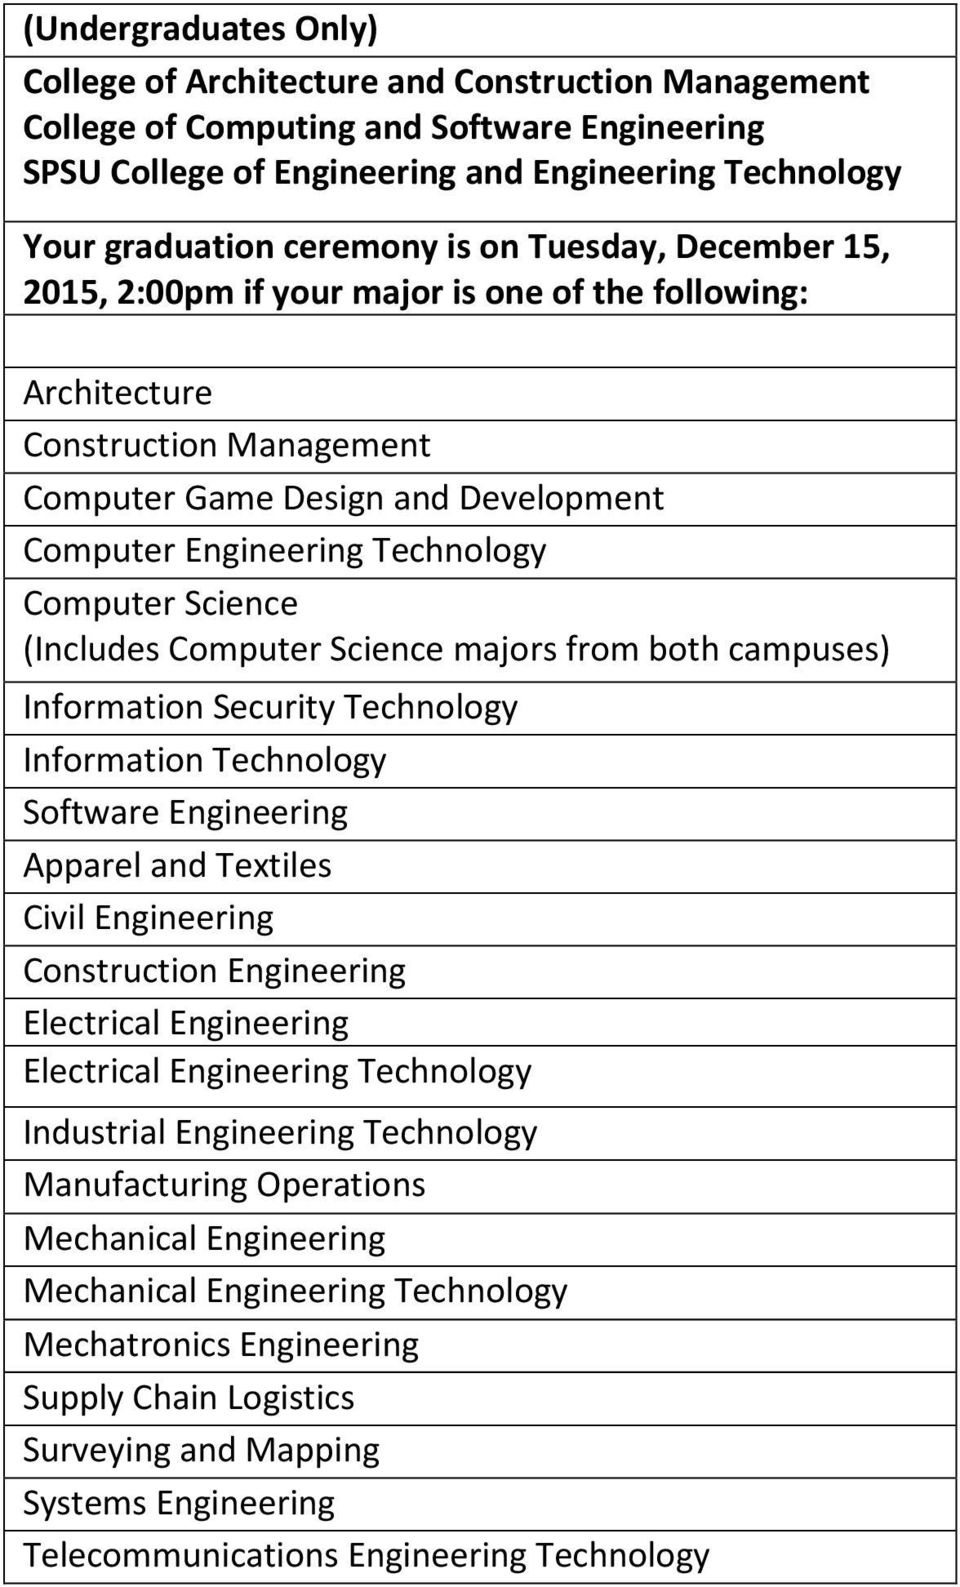 Computer Science majors from both campuses) Information Security Technology Information Technology Software Engineering Apparel and Textiles Civil Engineering Construction Engineering Electrical